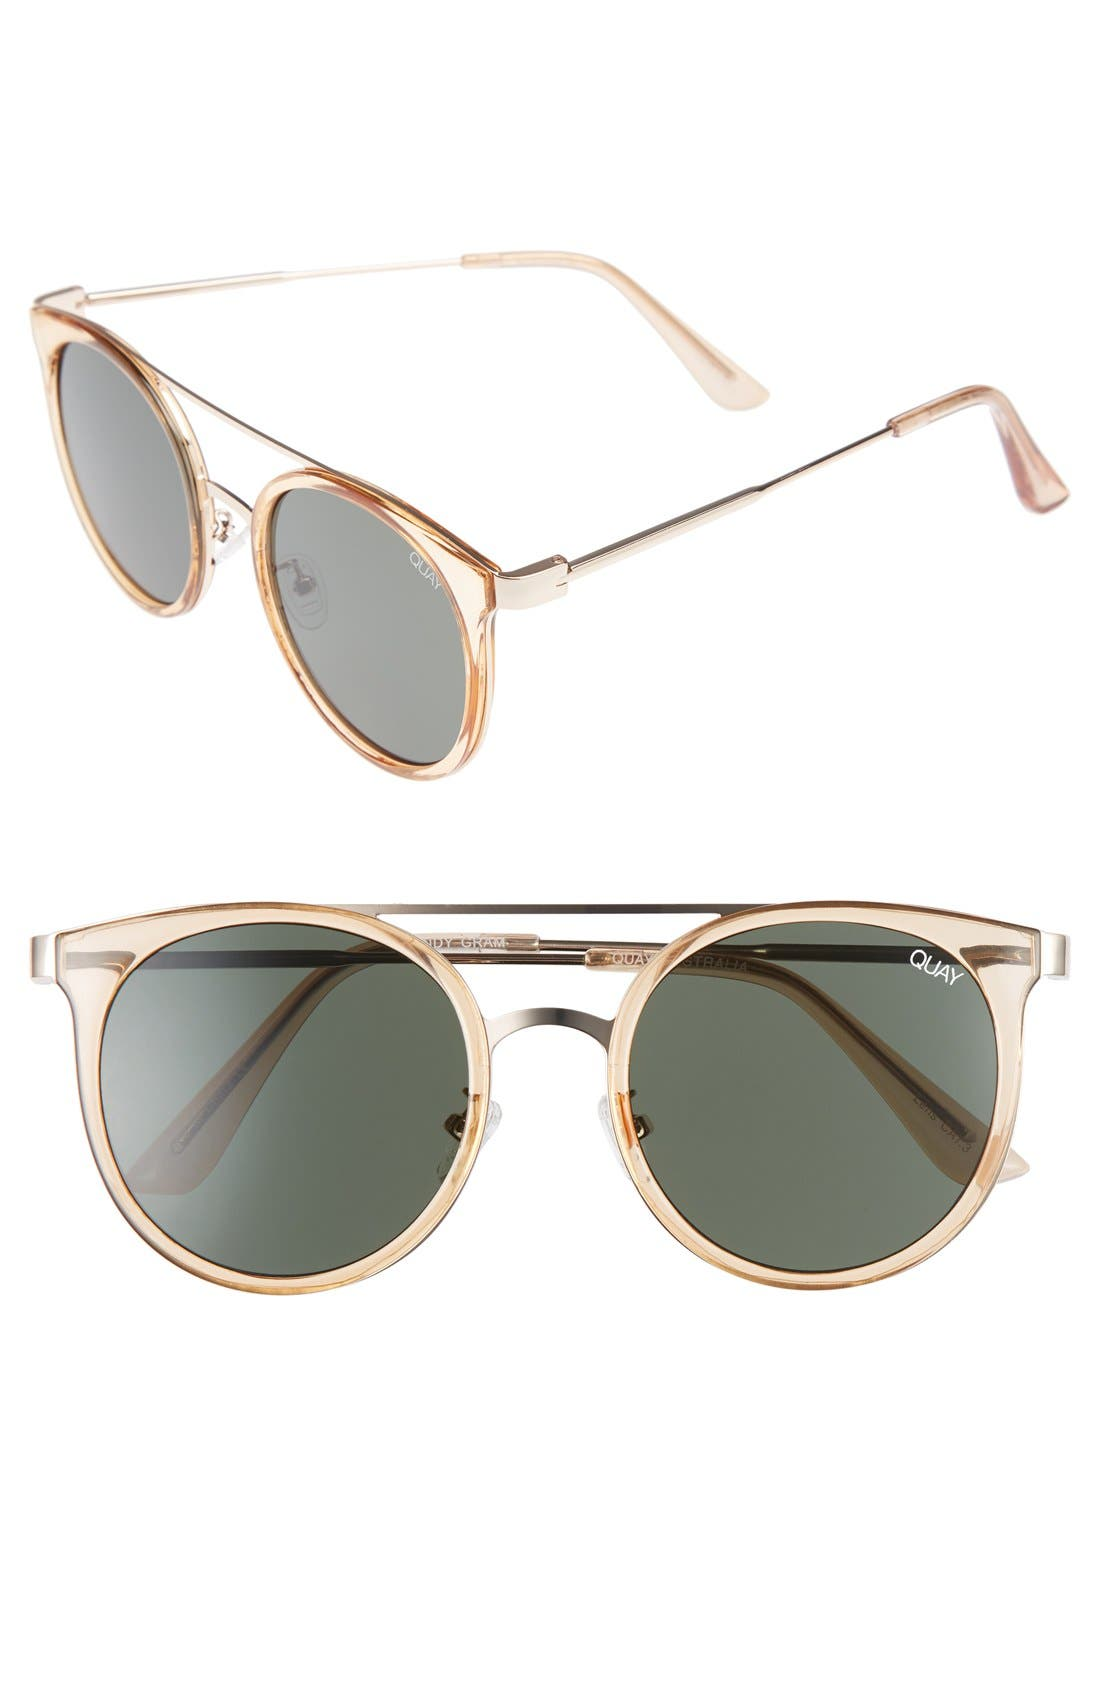 Alternate Image 1 Selected - Quay Australia Kandy Gram 51mm Round Sunglasses